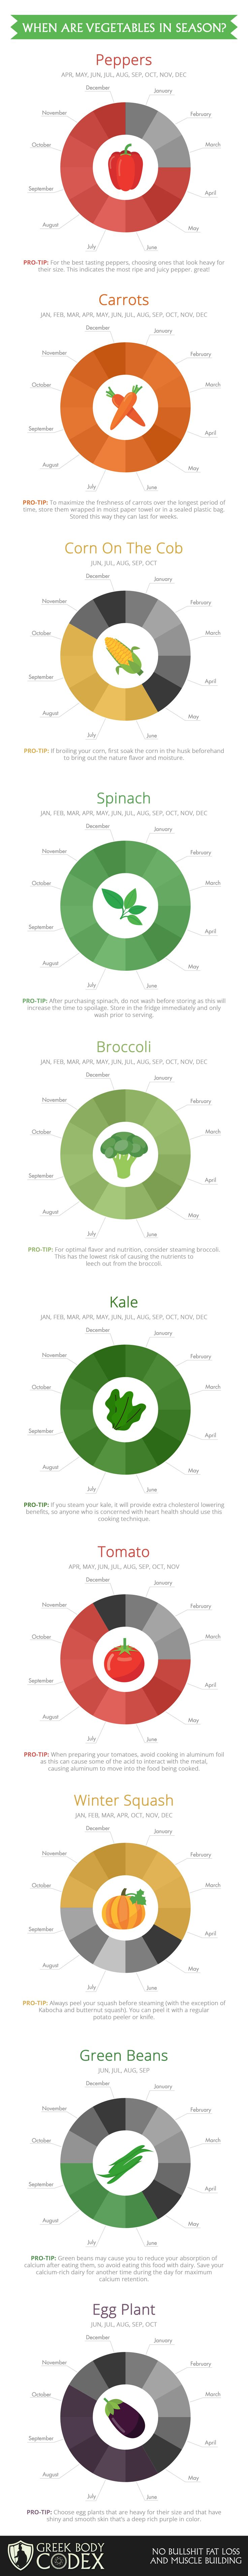 Keep your fridge stocked with in-season vegetables using this chart.